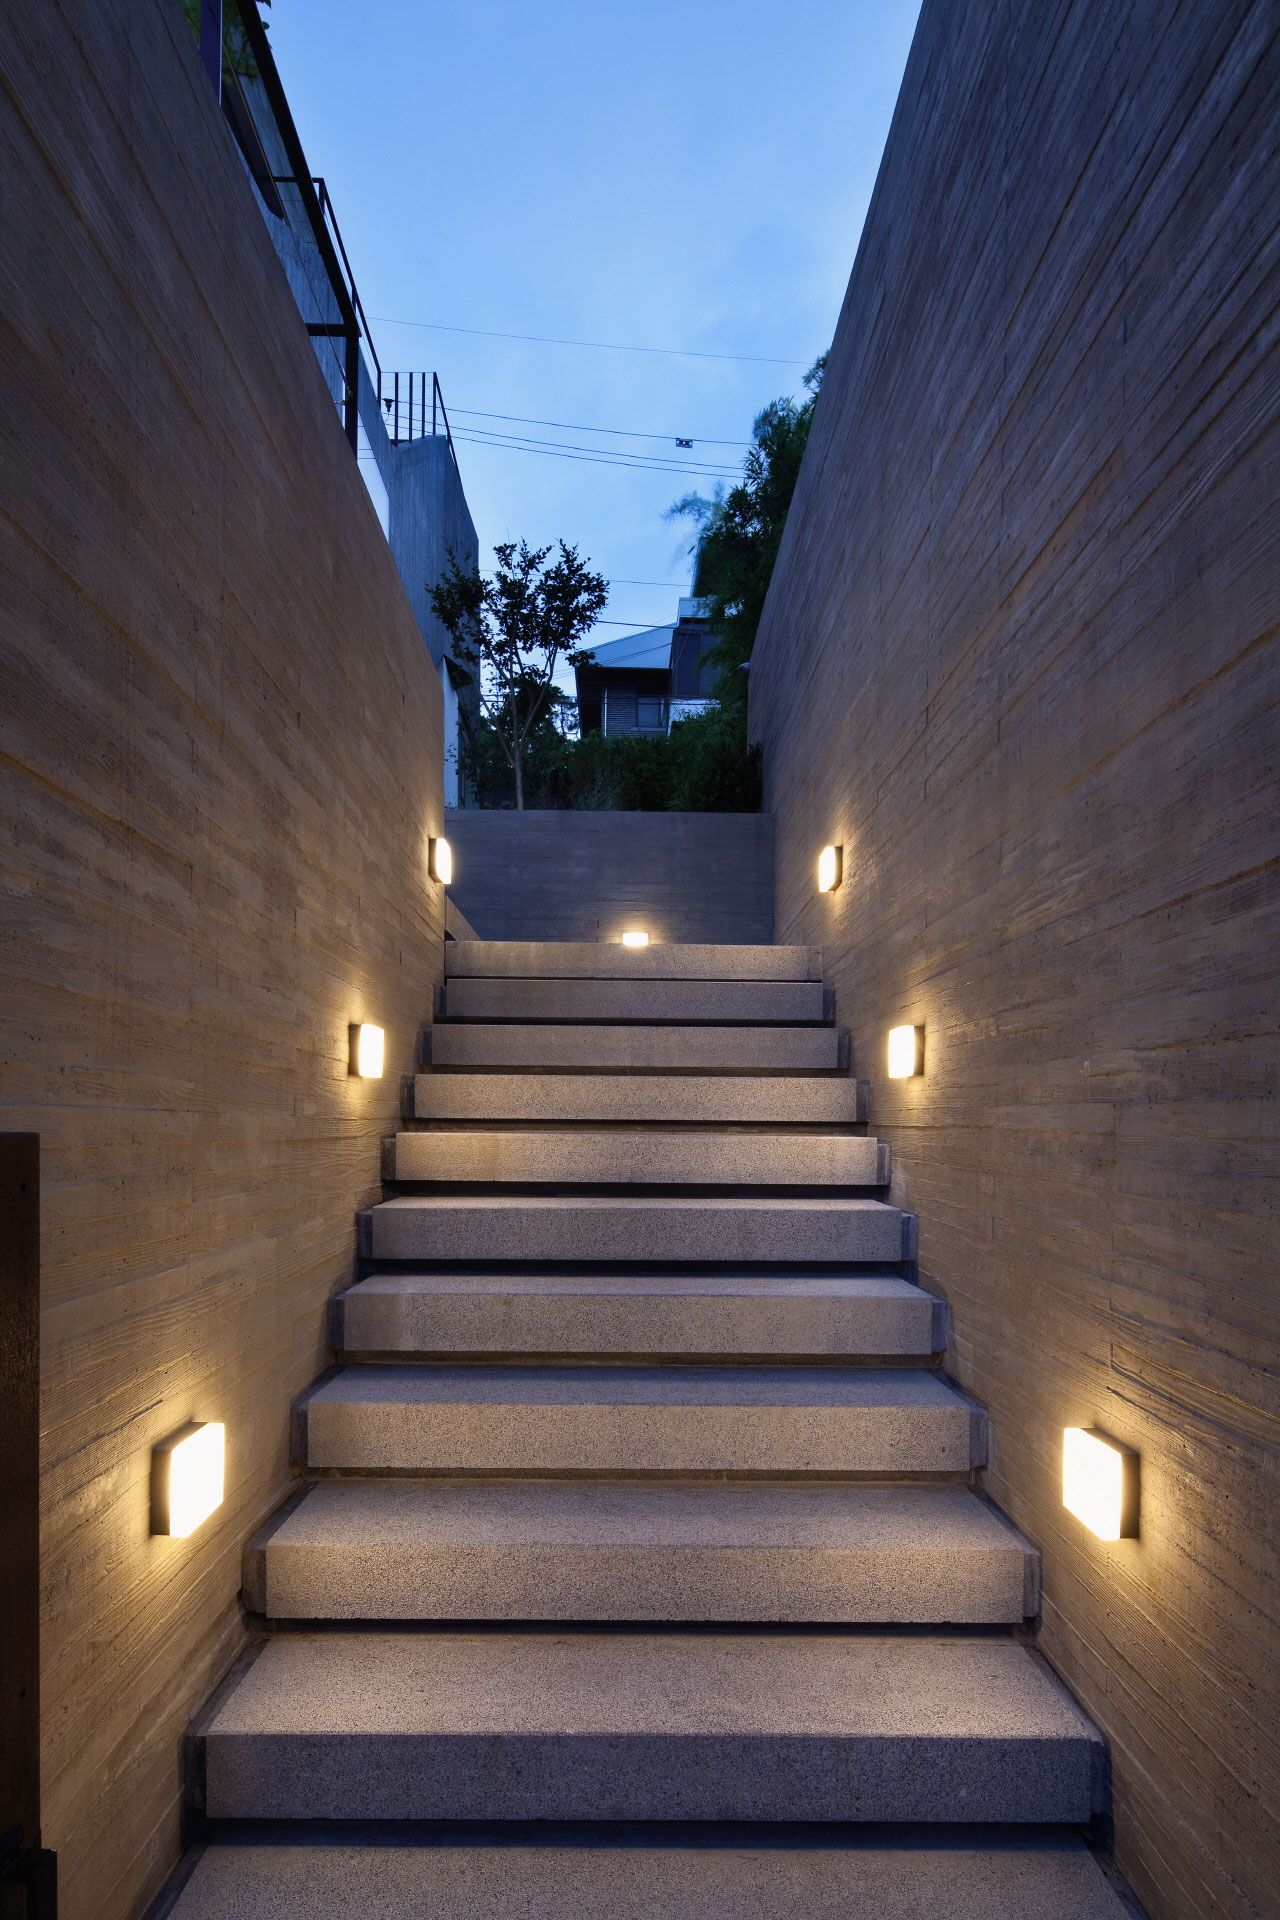 Lighting Basement Washroom Stairs: 25 Modern Outdoor Design Ideas